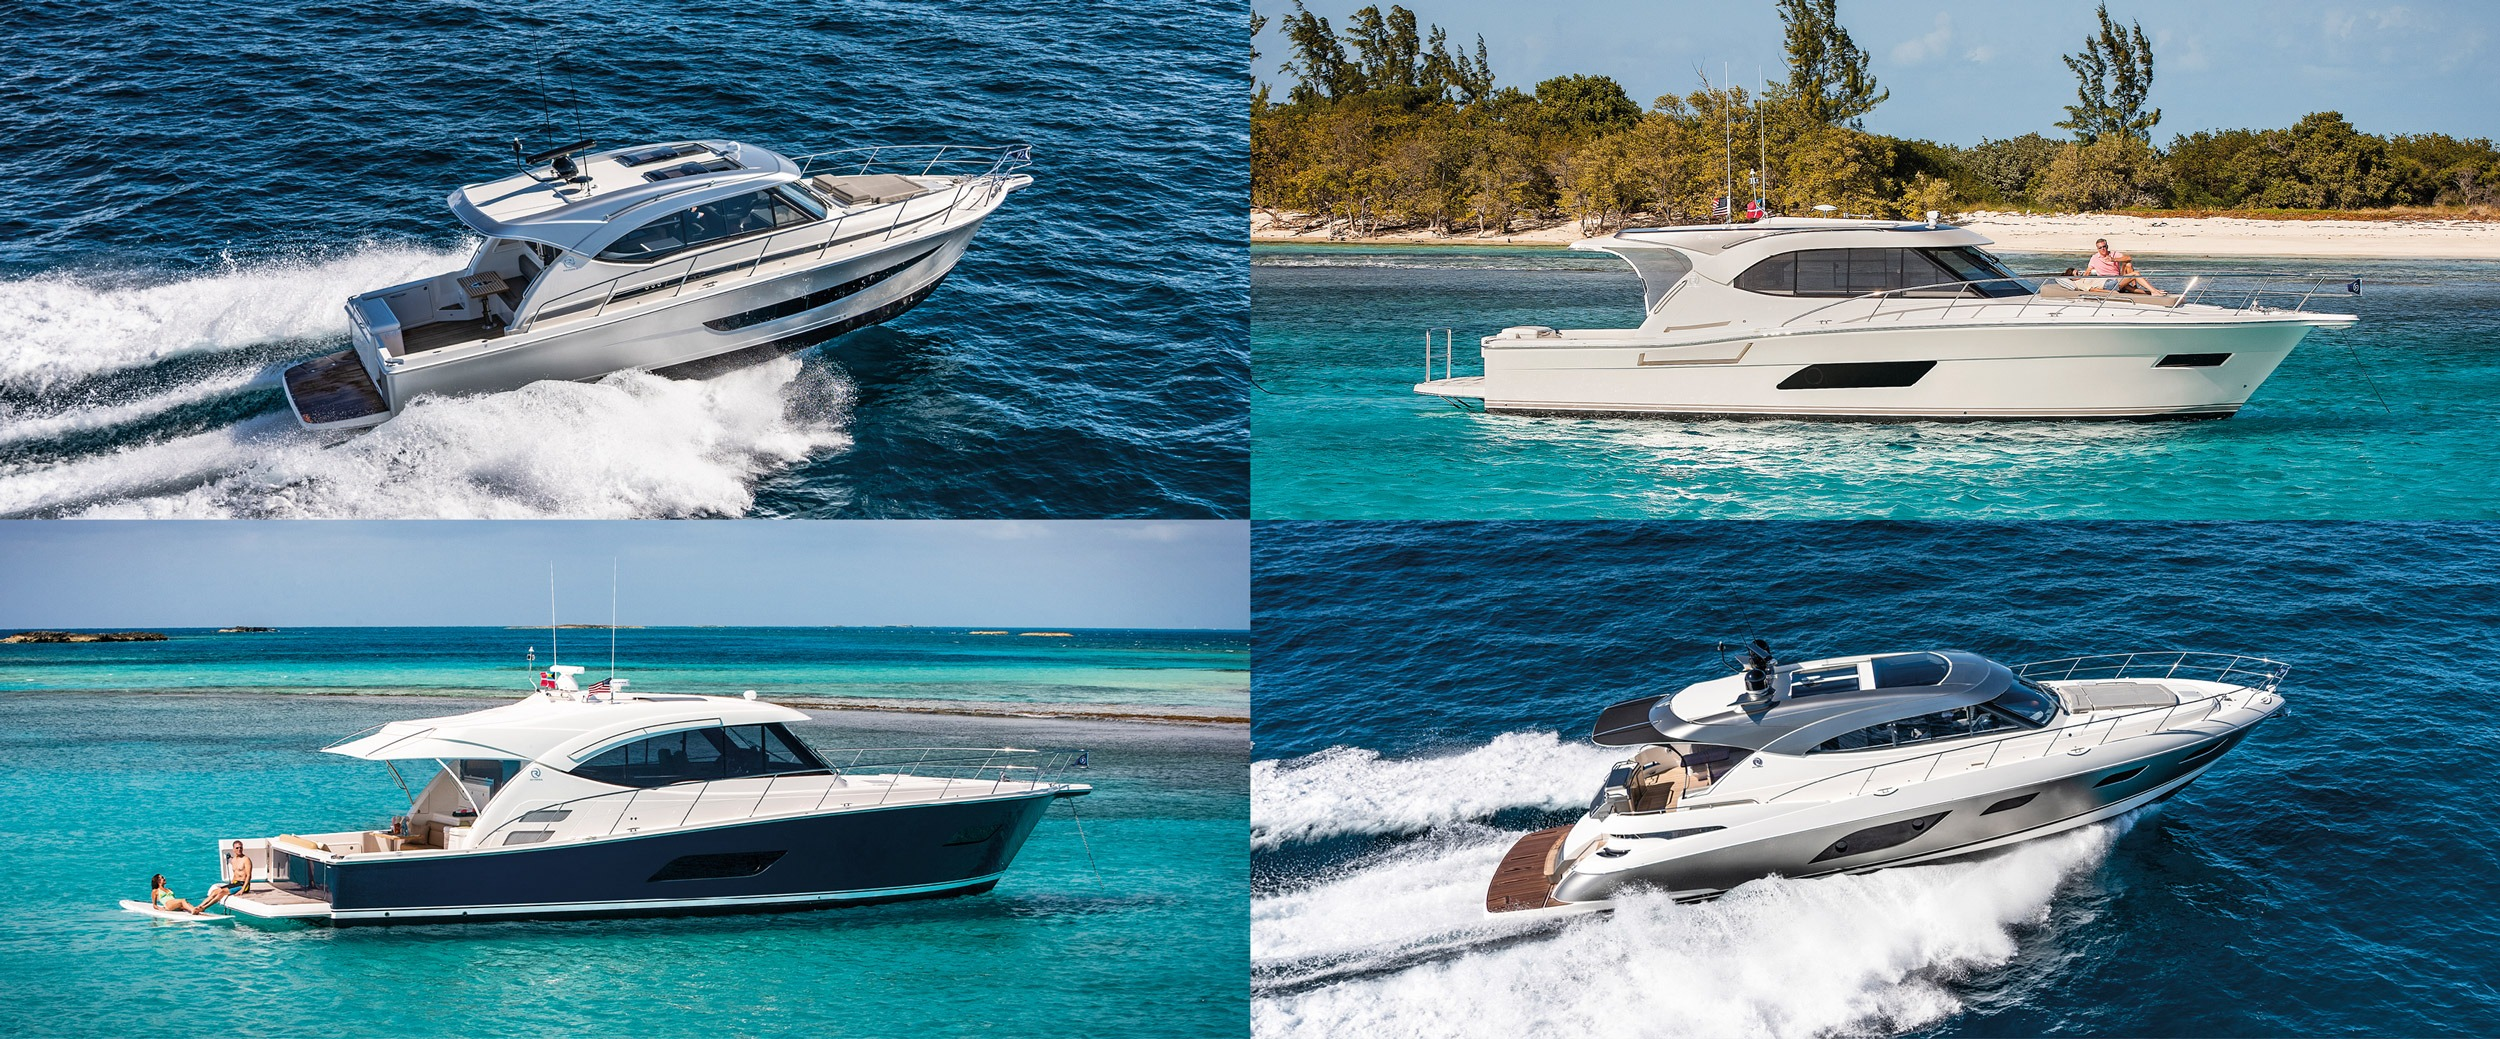 Riviera to premiere four sensational yachts at the San Diego Boat Show in California on June 6 to 9